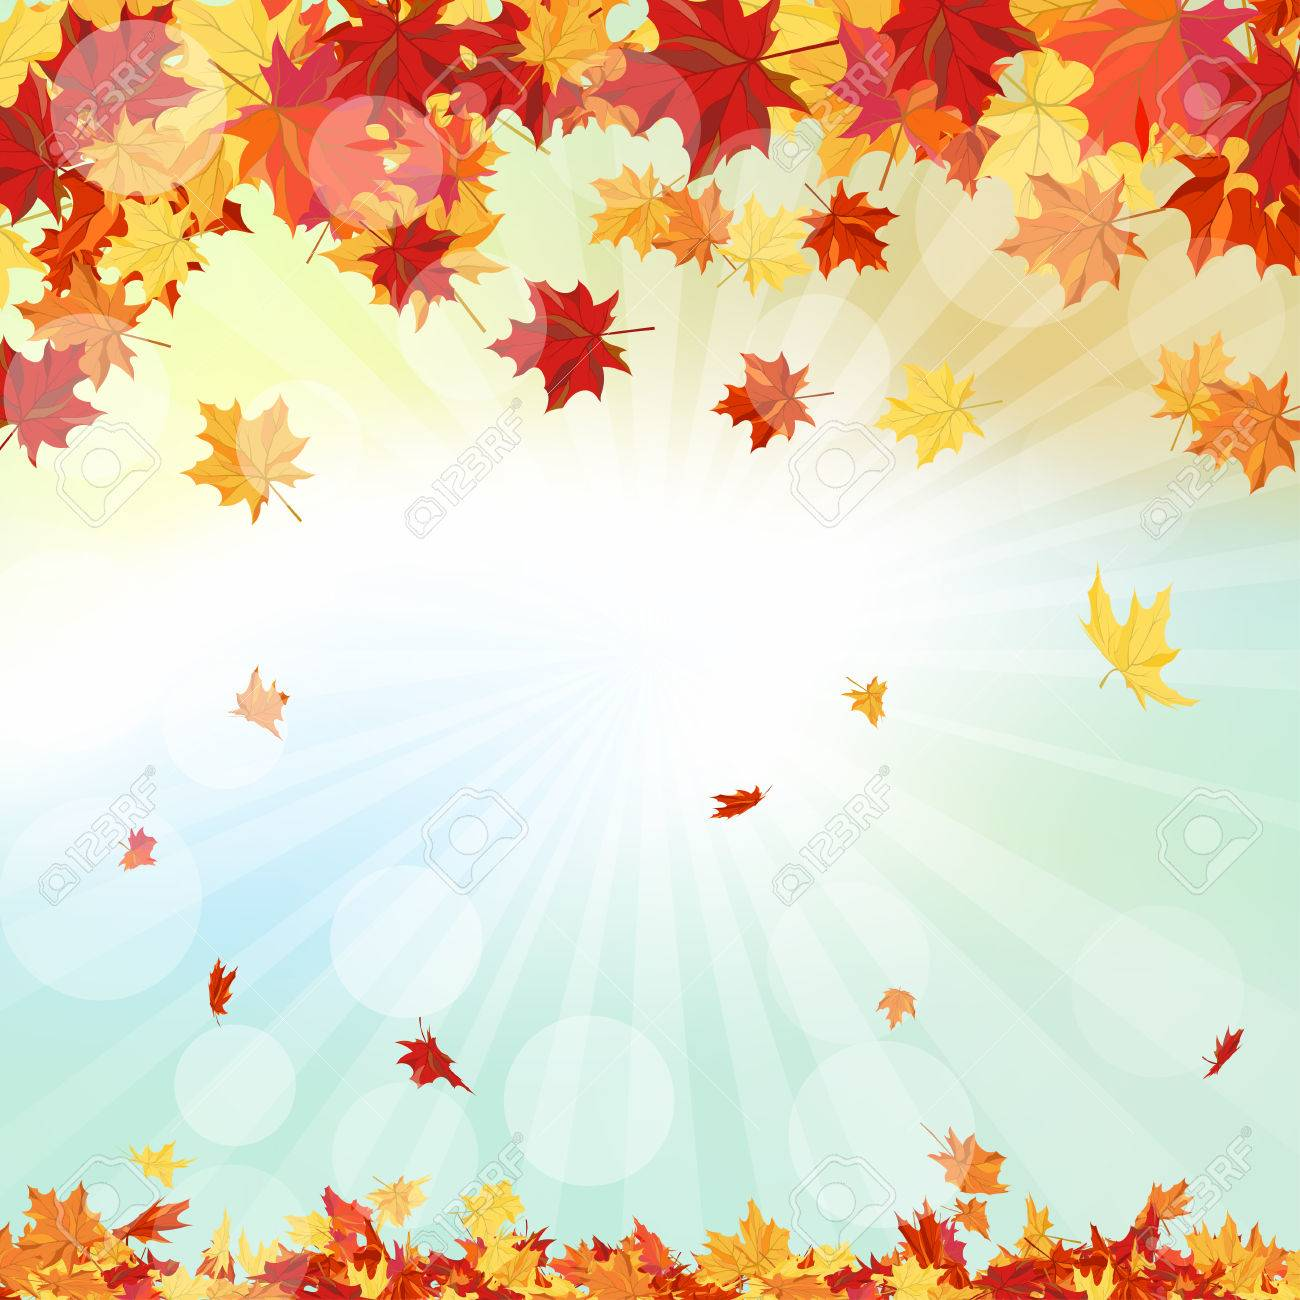 Autumn Frame With Falling Maple Leaves on Sky Background - 44064239